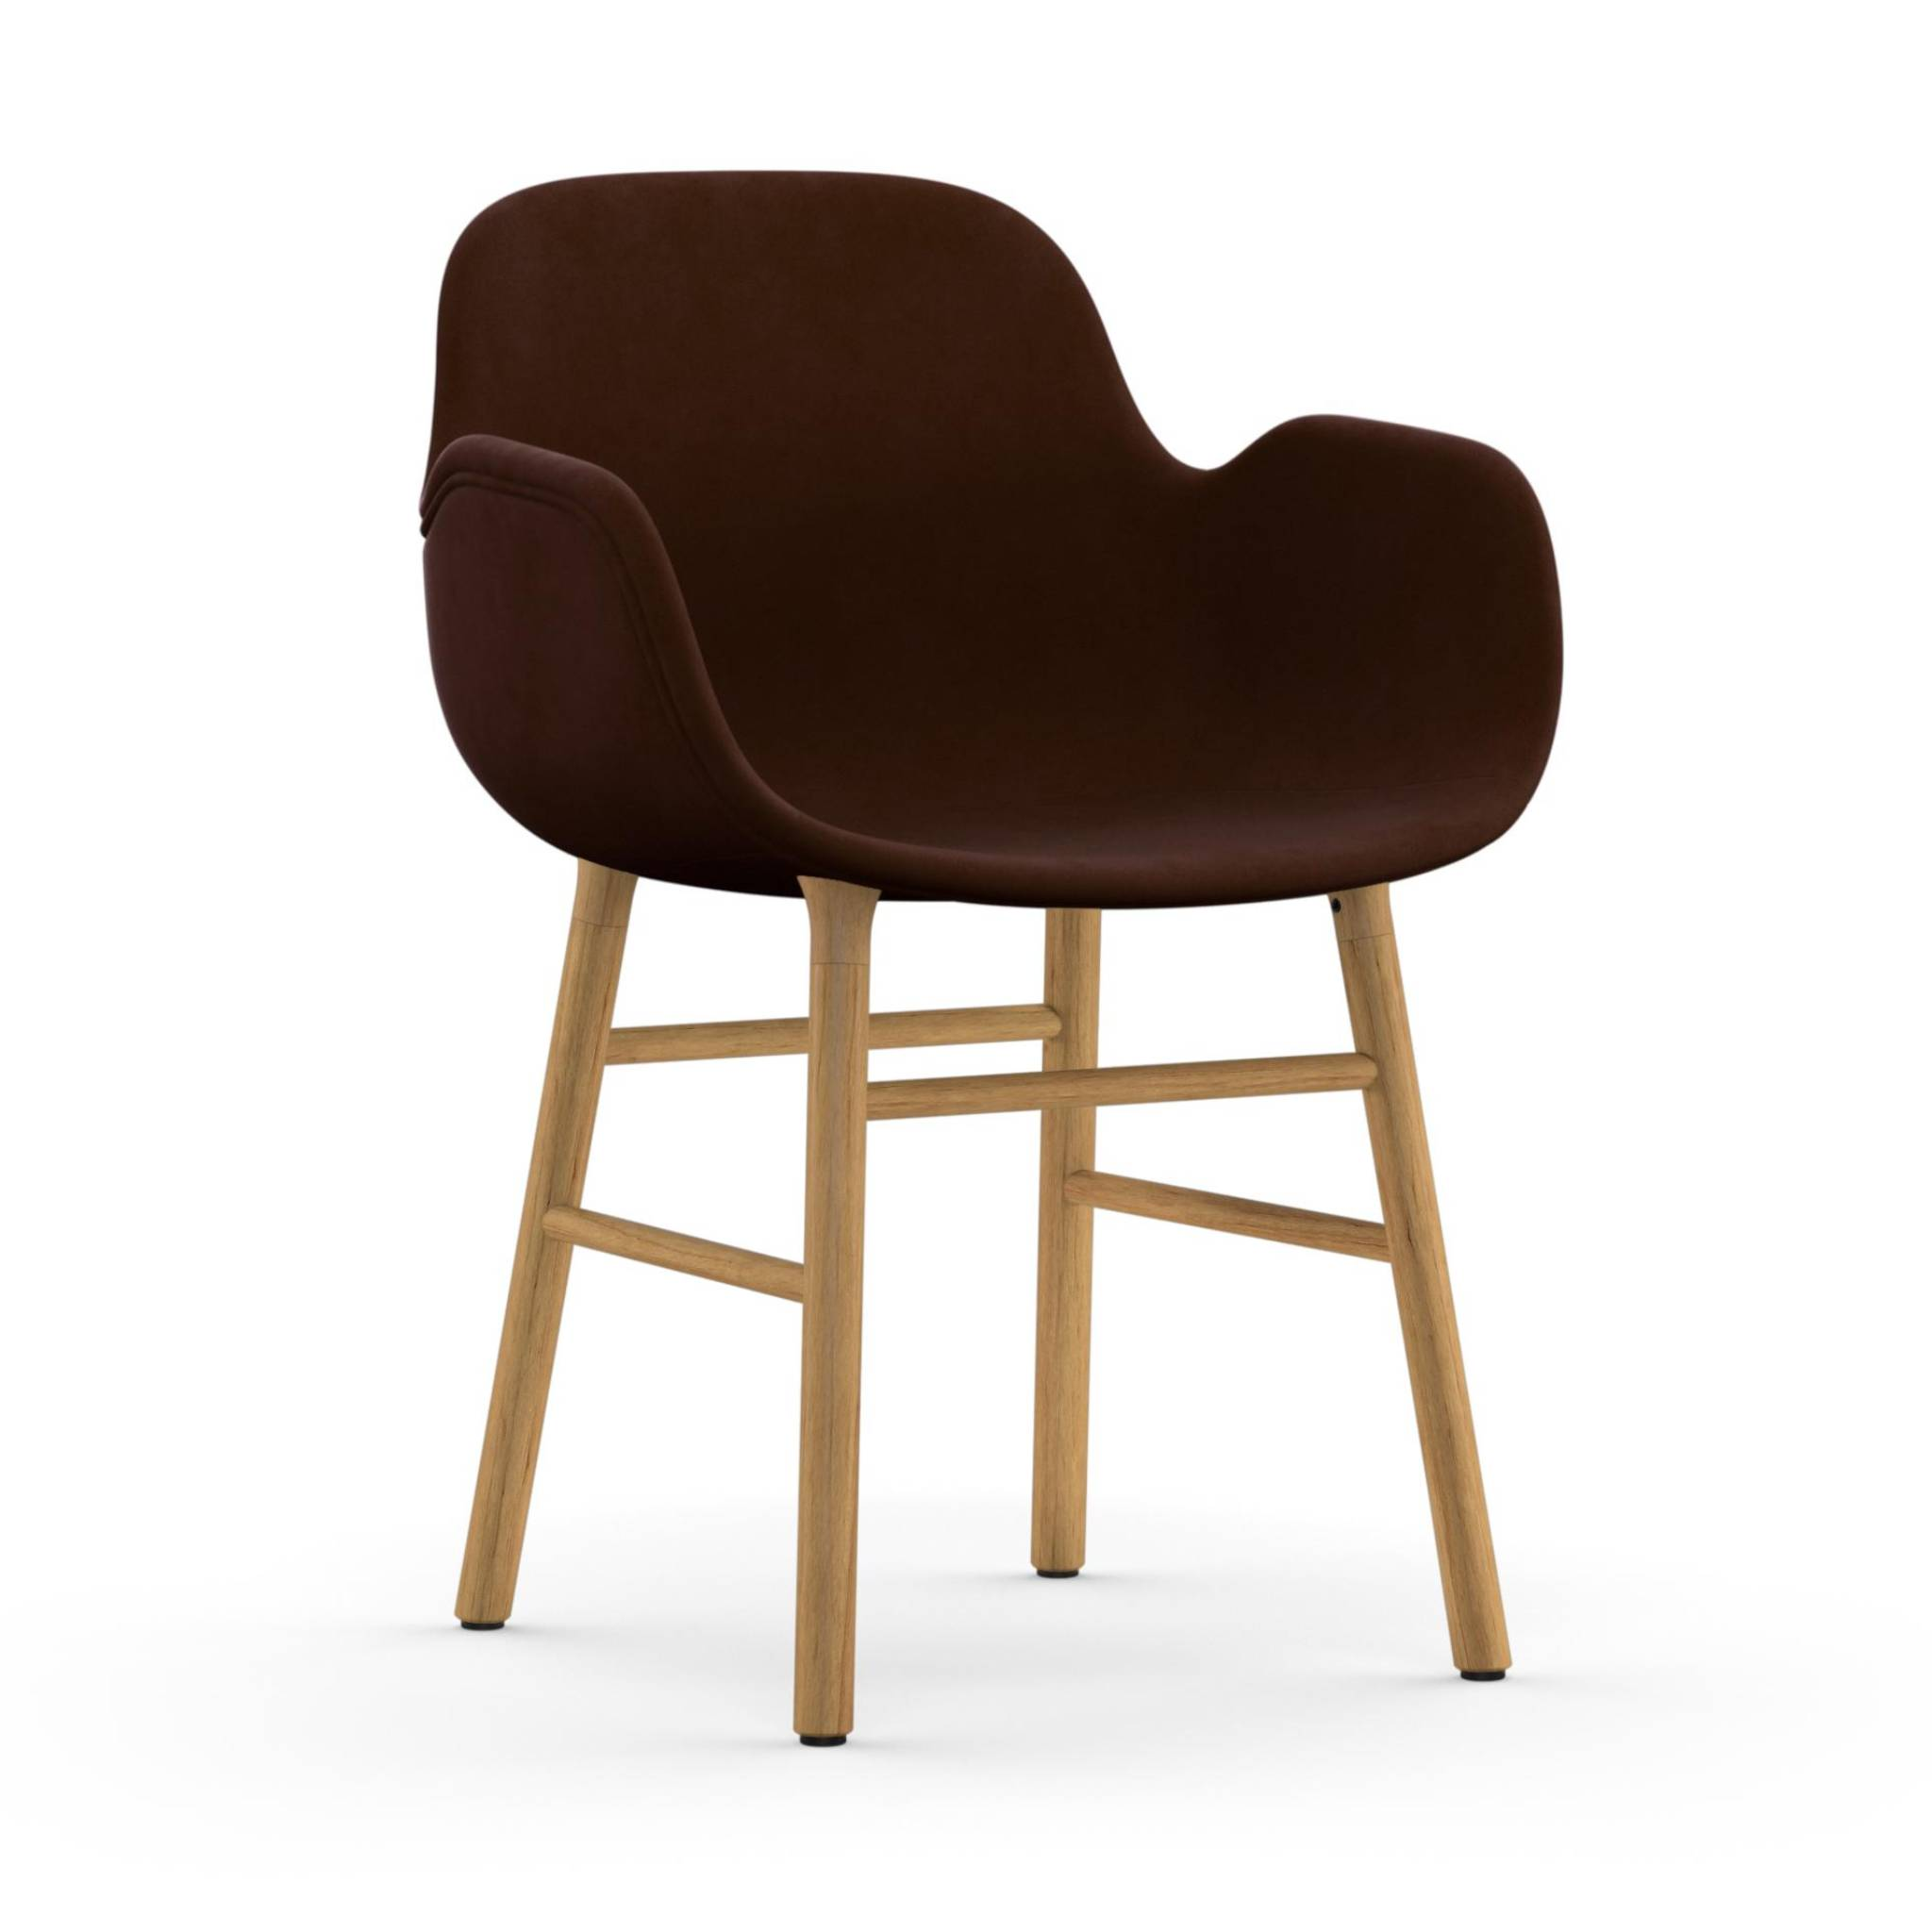 Form Armchair: Walnut or Oak Upholstered: Oak